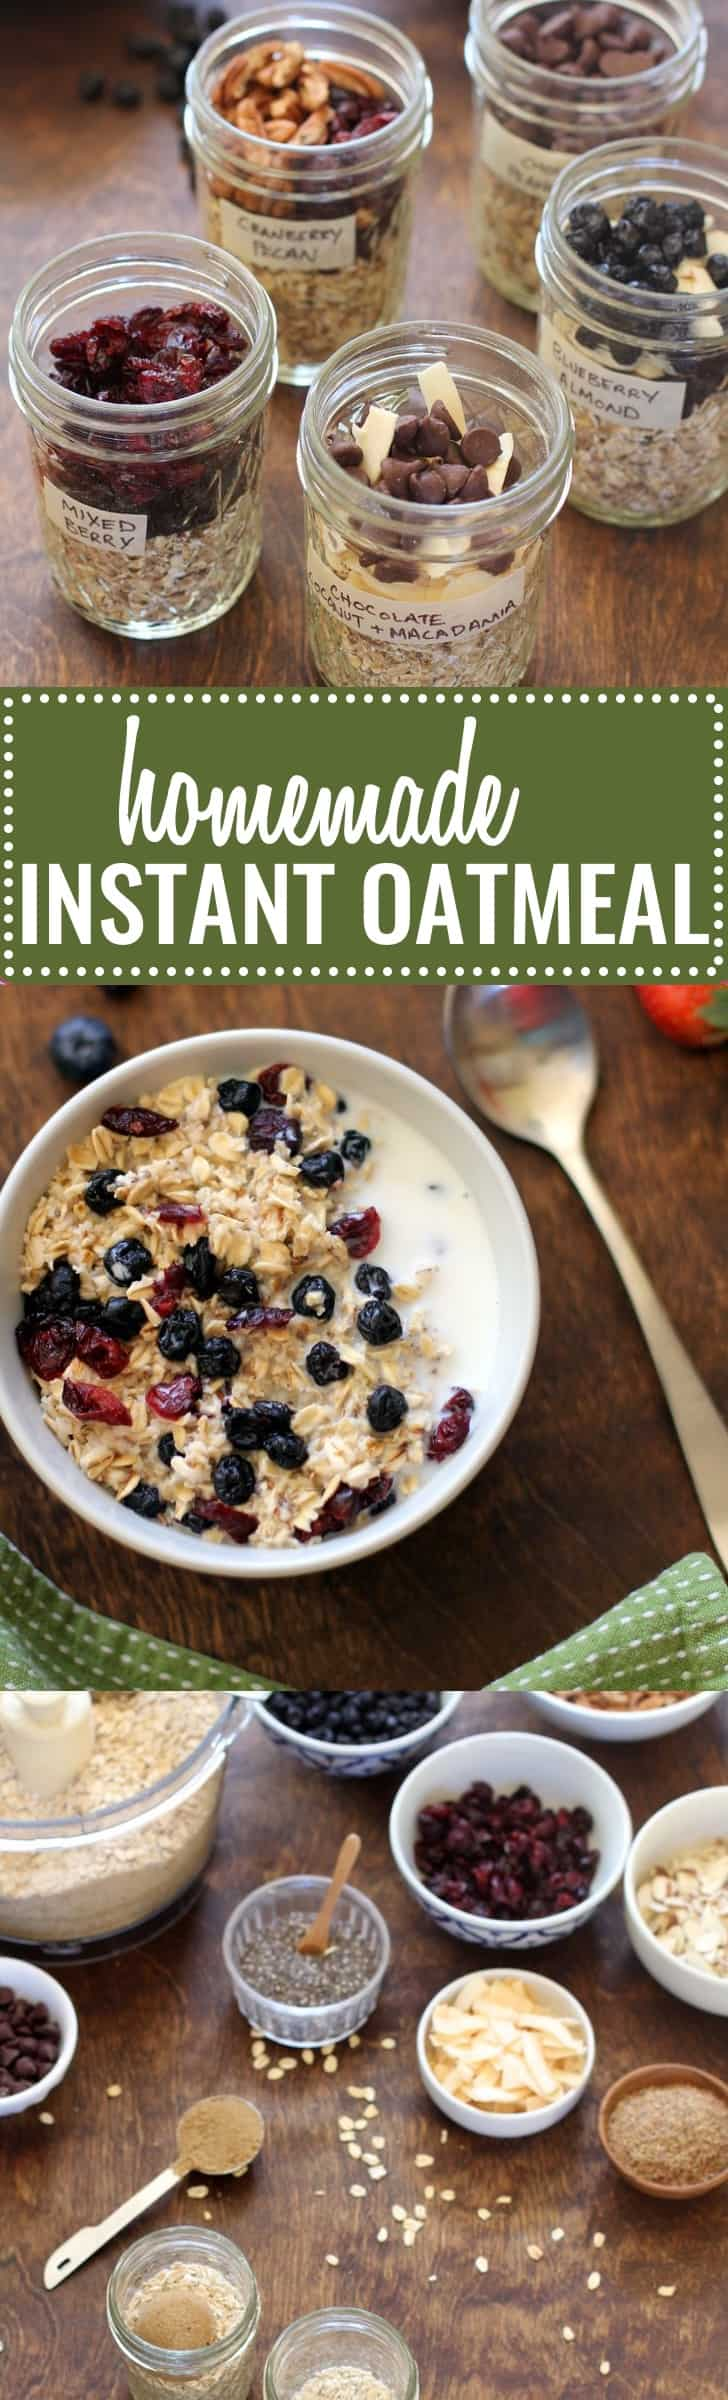 Homemade Instant Oatmeal - save time and money!